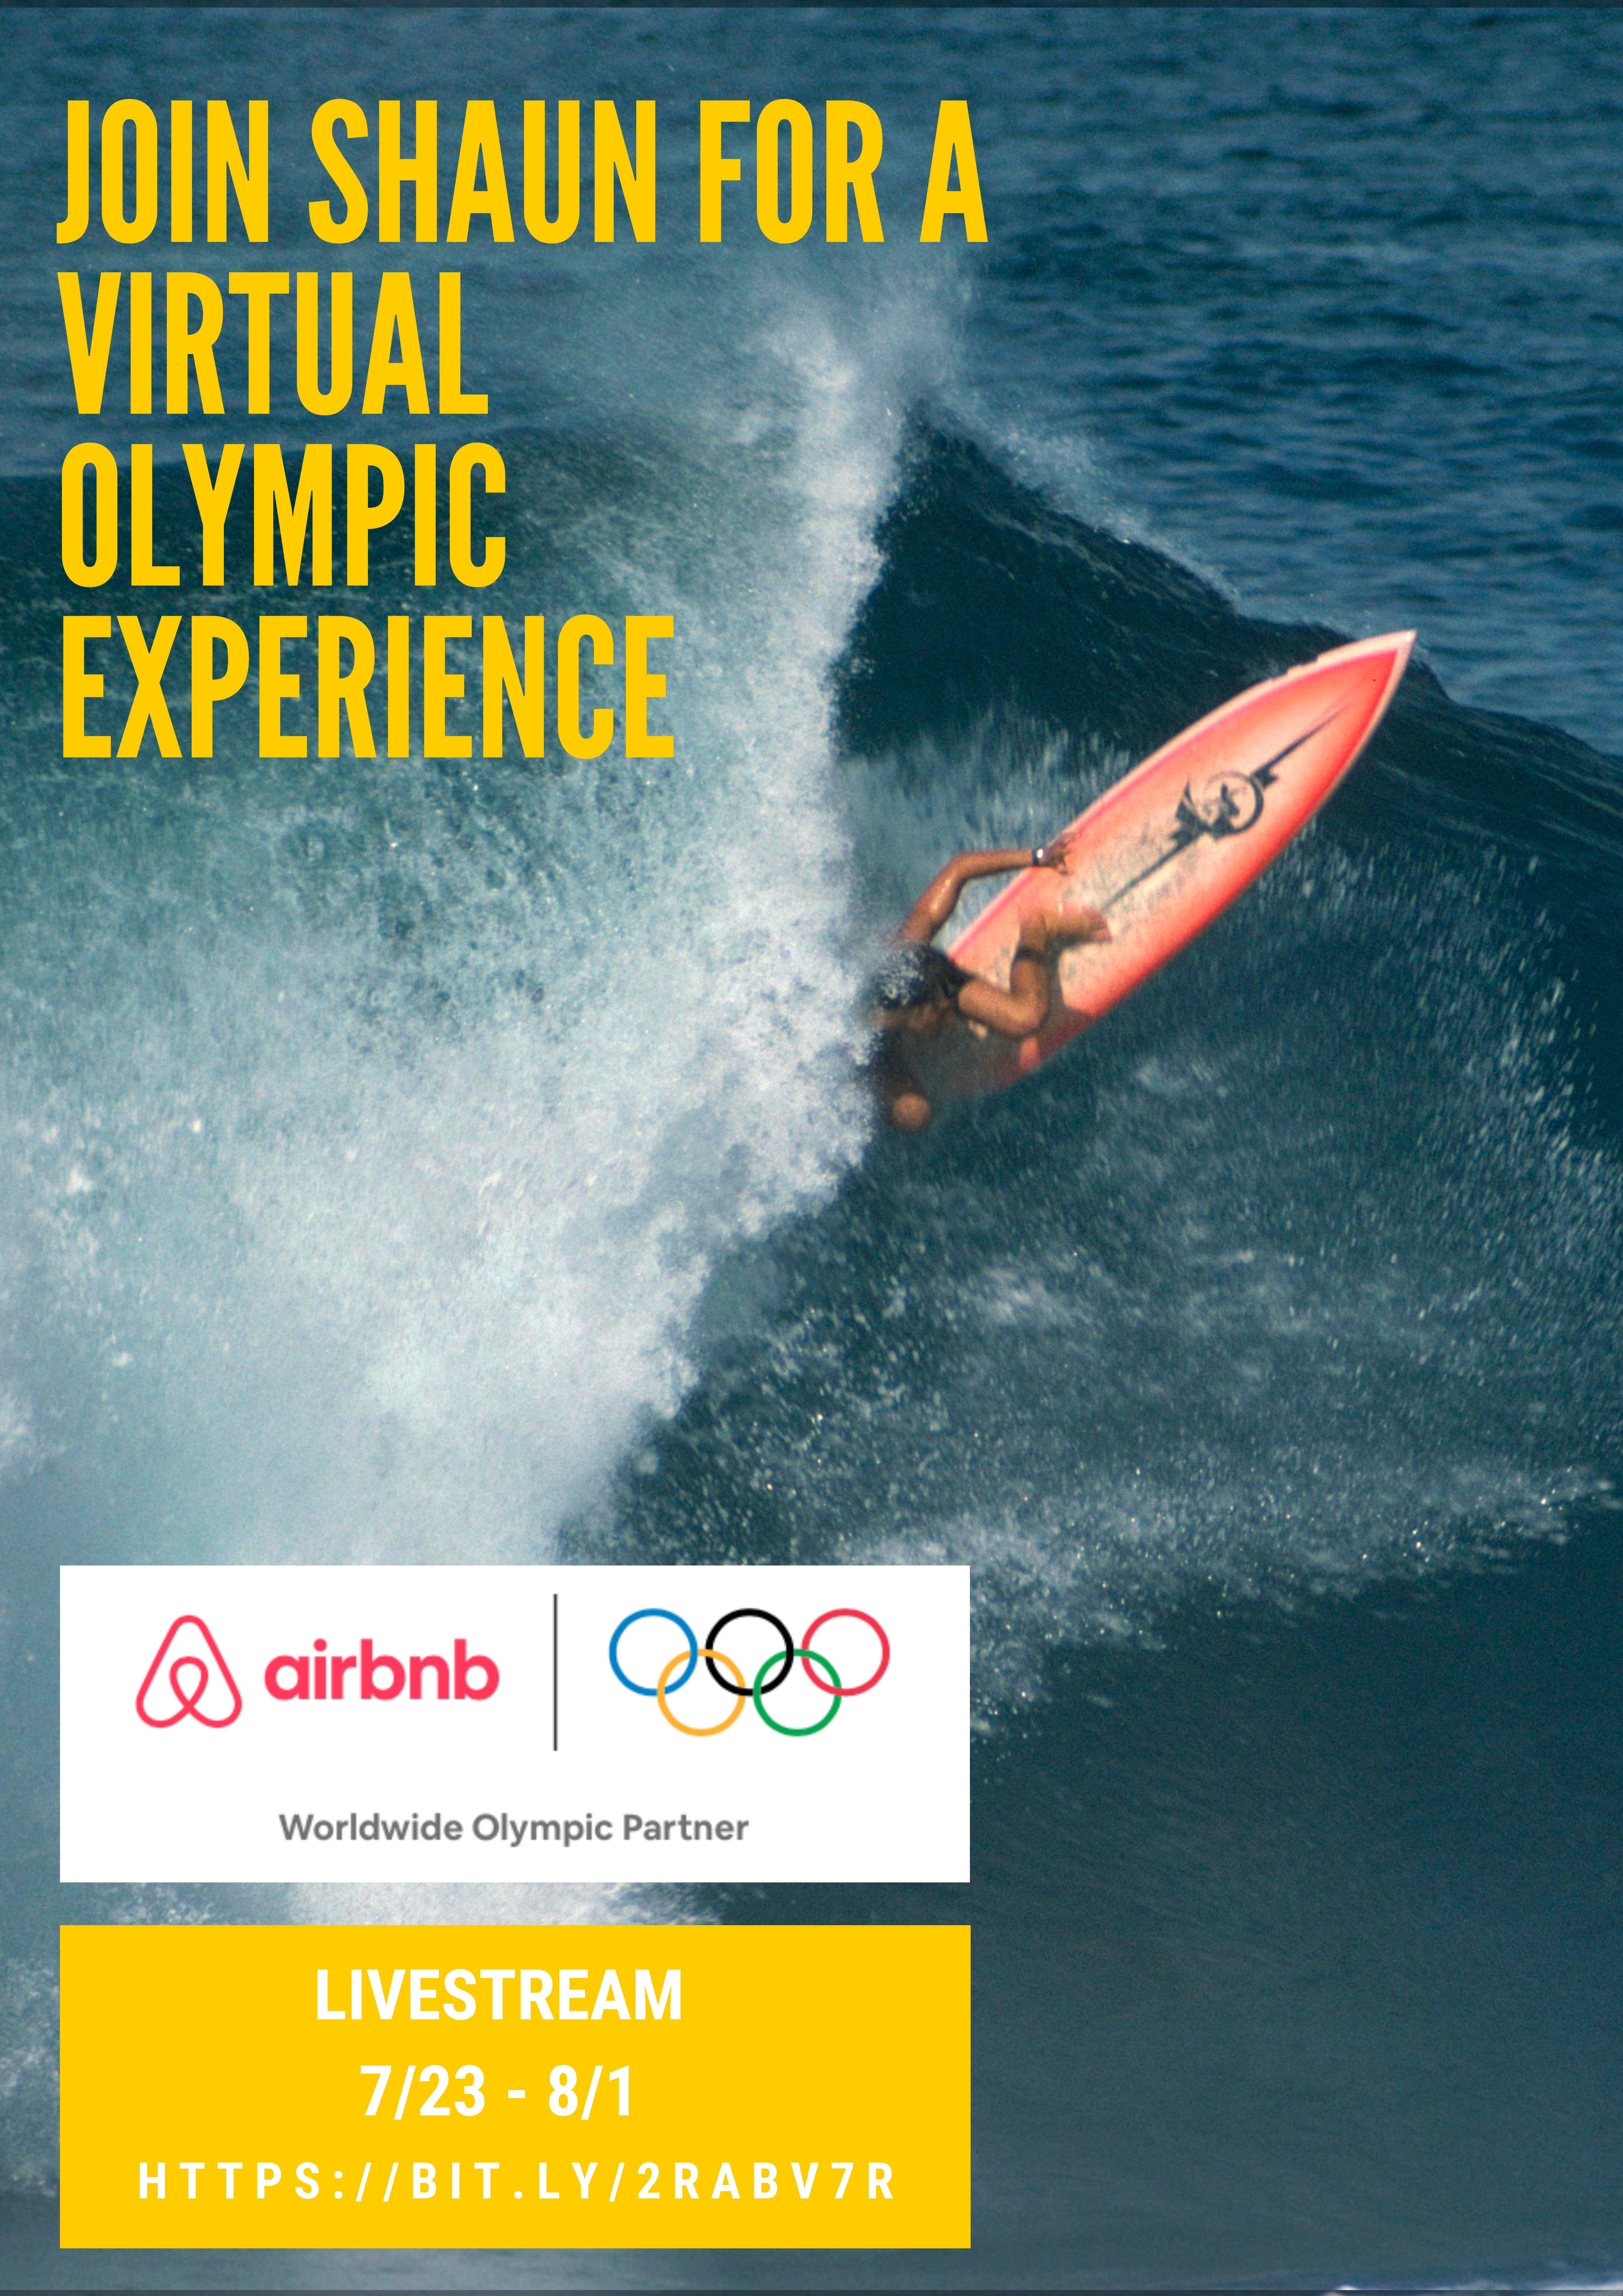 World Champion Surfer Shaun Tomson Teams Up with Airbnb to Offer Exclusive Olympic Perspective